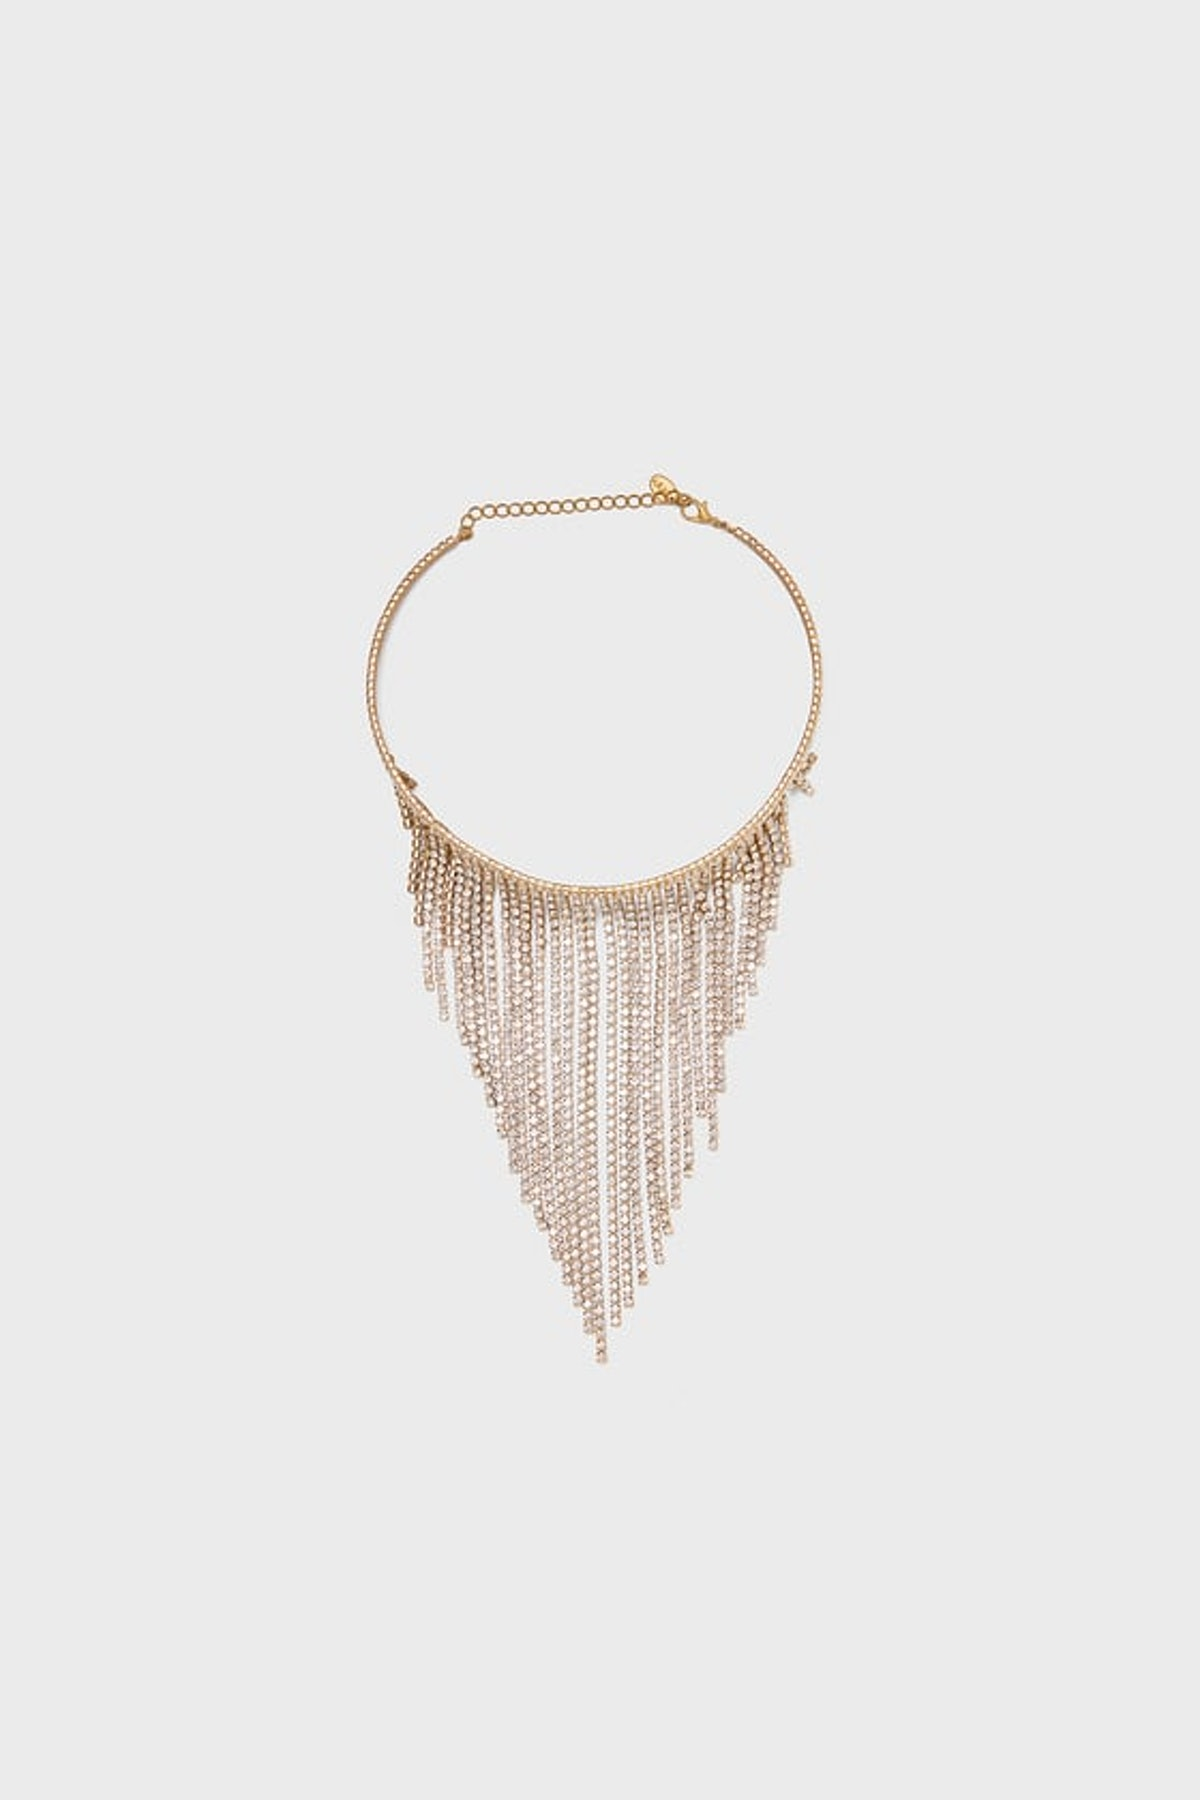 BEJEWELED CHOKER NECKLACE